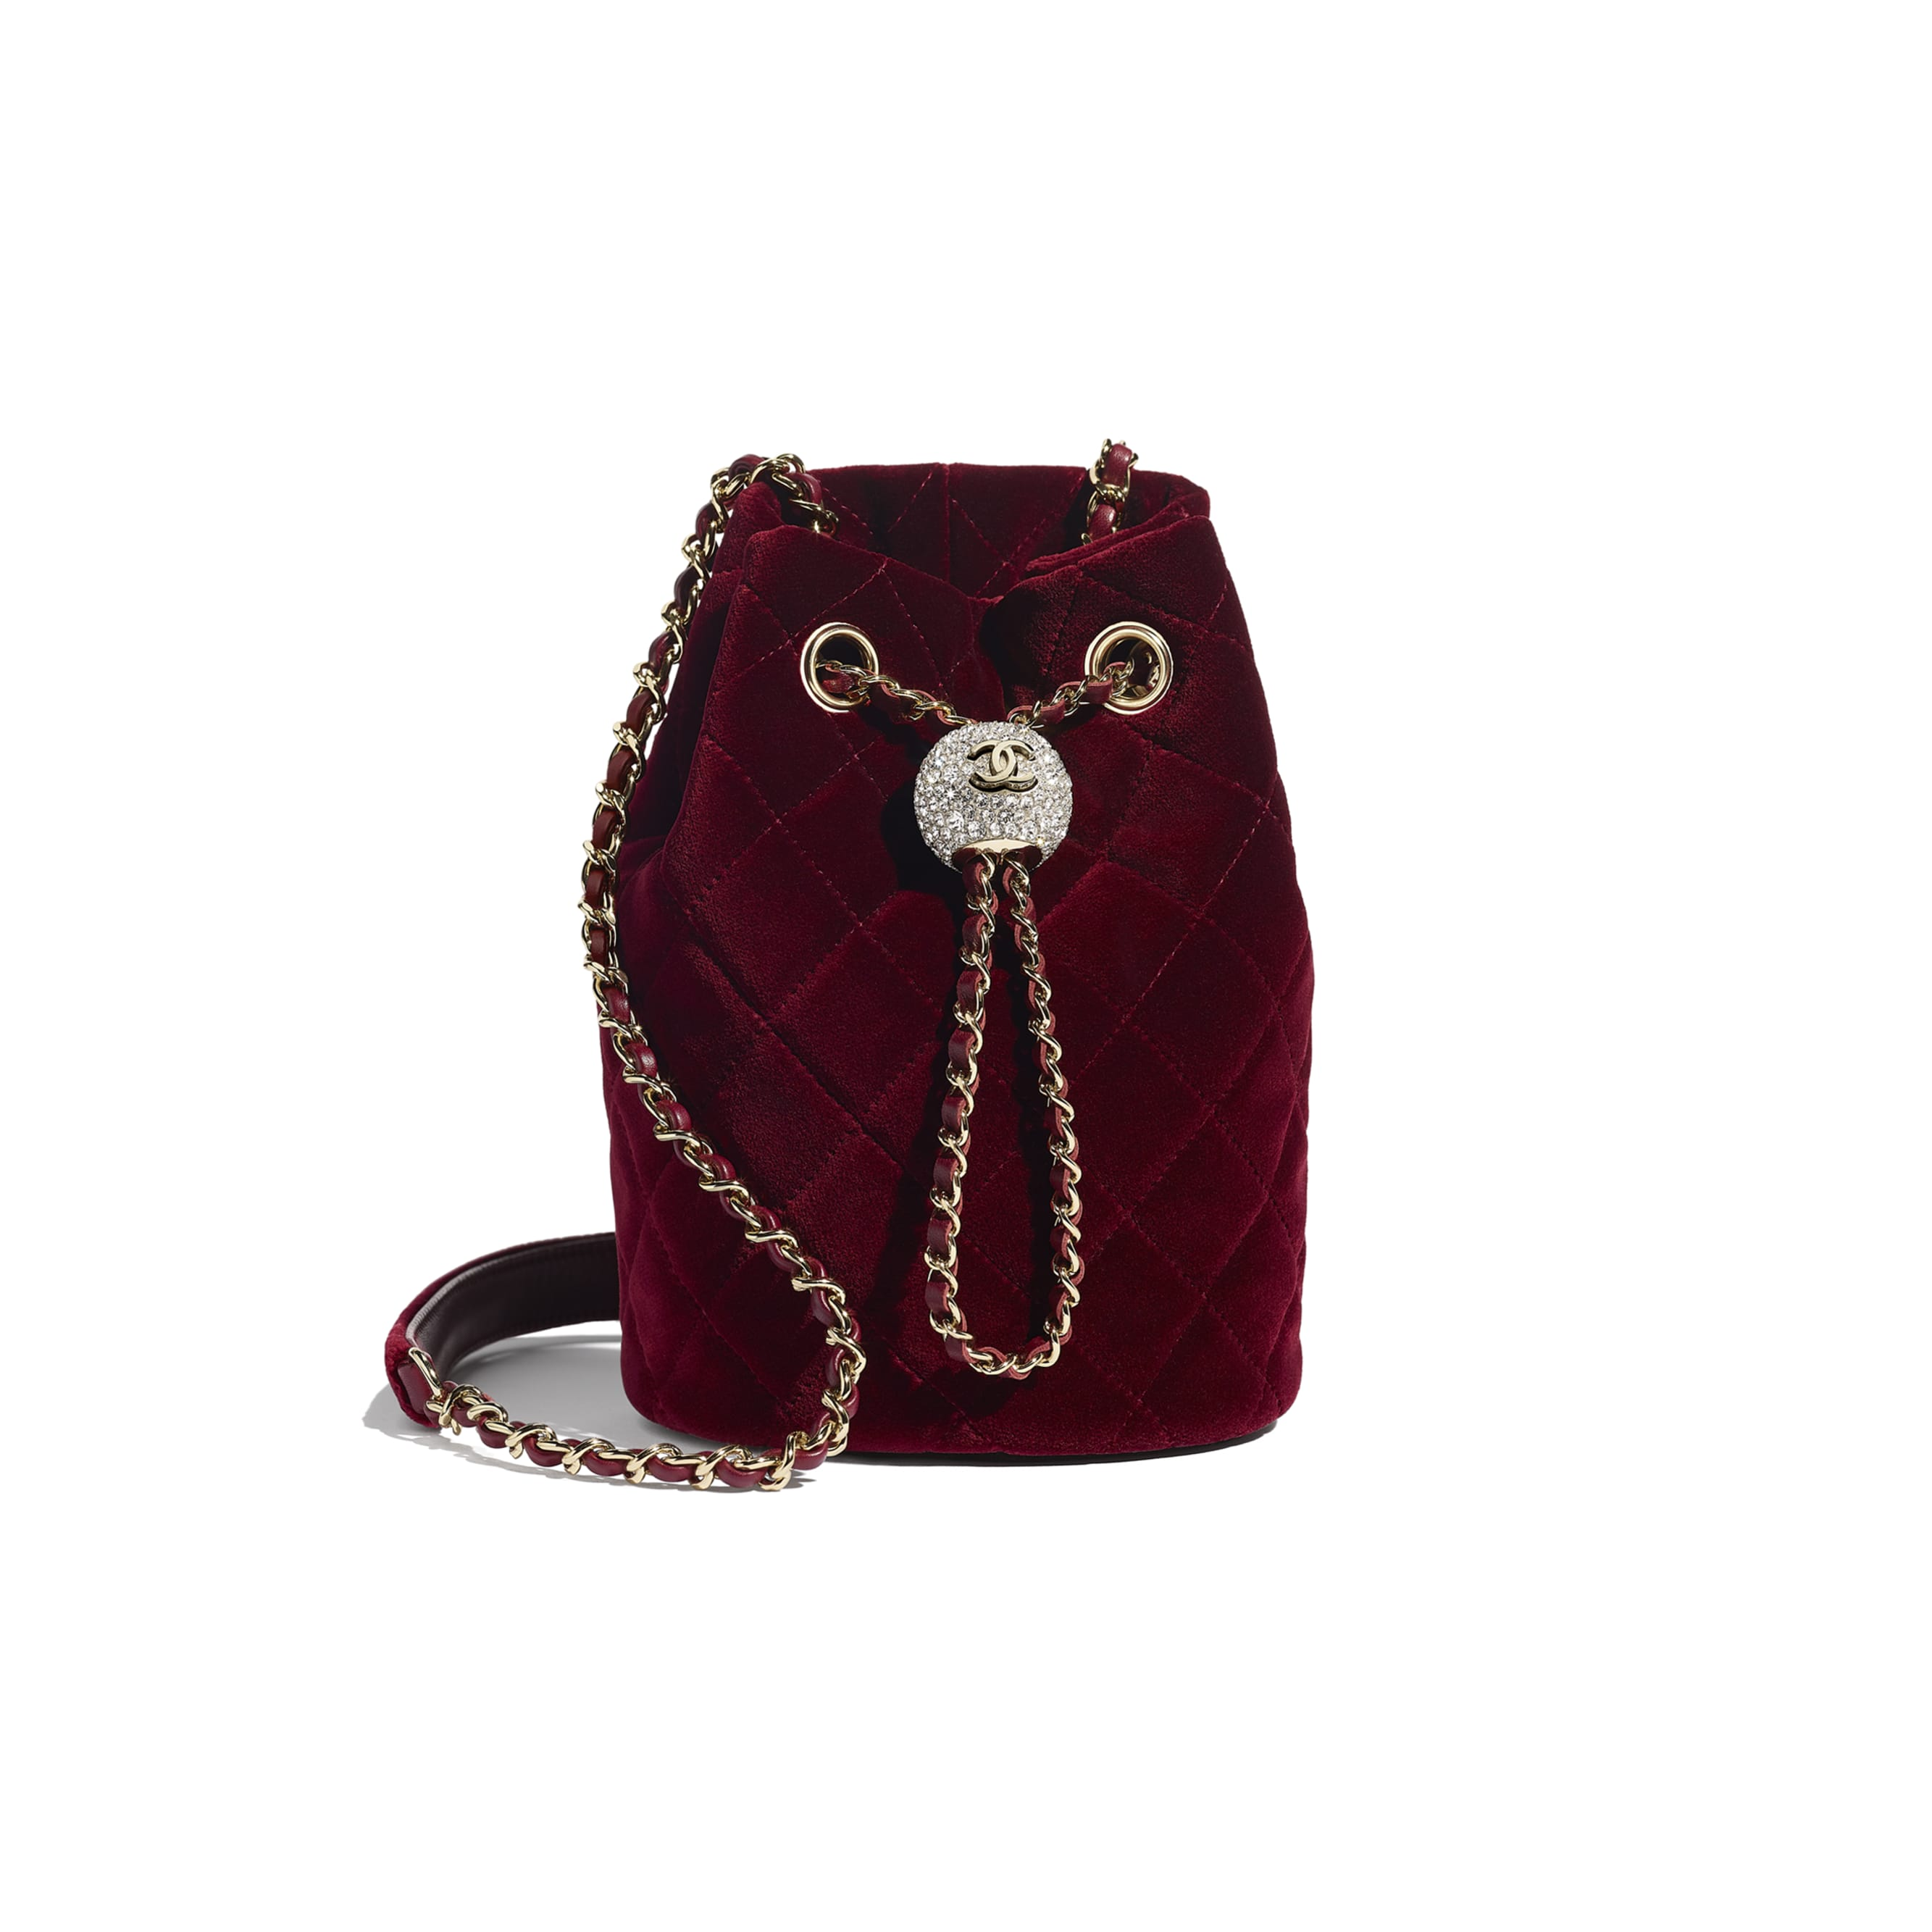 Drawstring Bag - Burgundy - Velvet, Diamanté & Gold-Tone Metal - CHANEL - Default view - see standard sized version